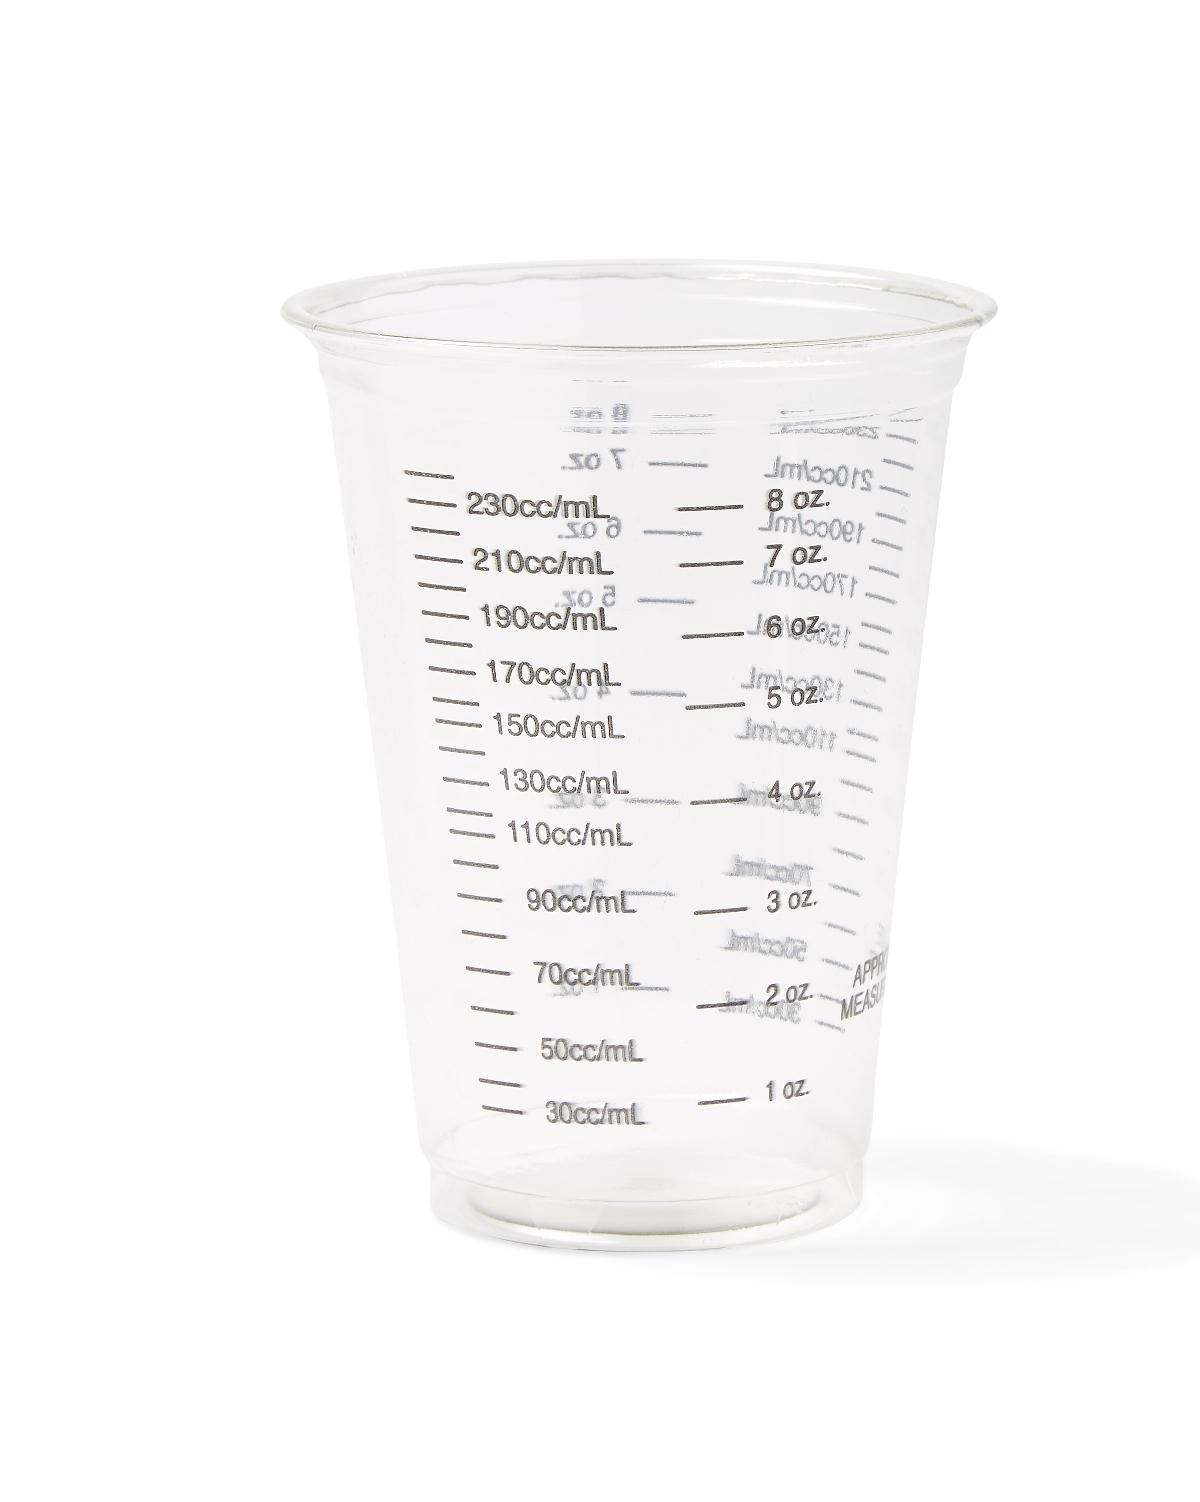 Nursing Supplies & Patient Care Food Service Drinking Cups & Glasses Cups & Glasses - Non03010bar - Cup Plastic Graduated 10 Ounce NON03010BAR